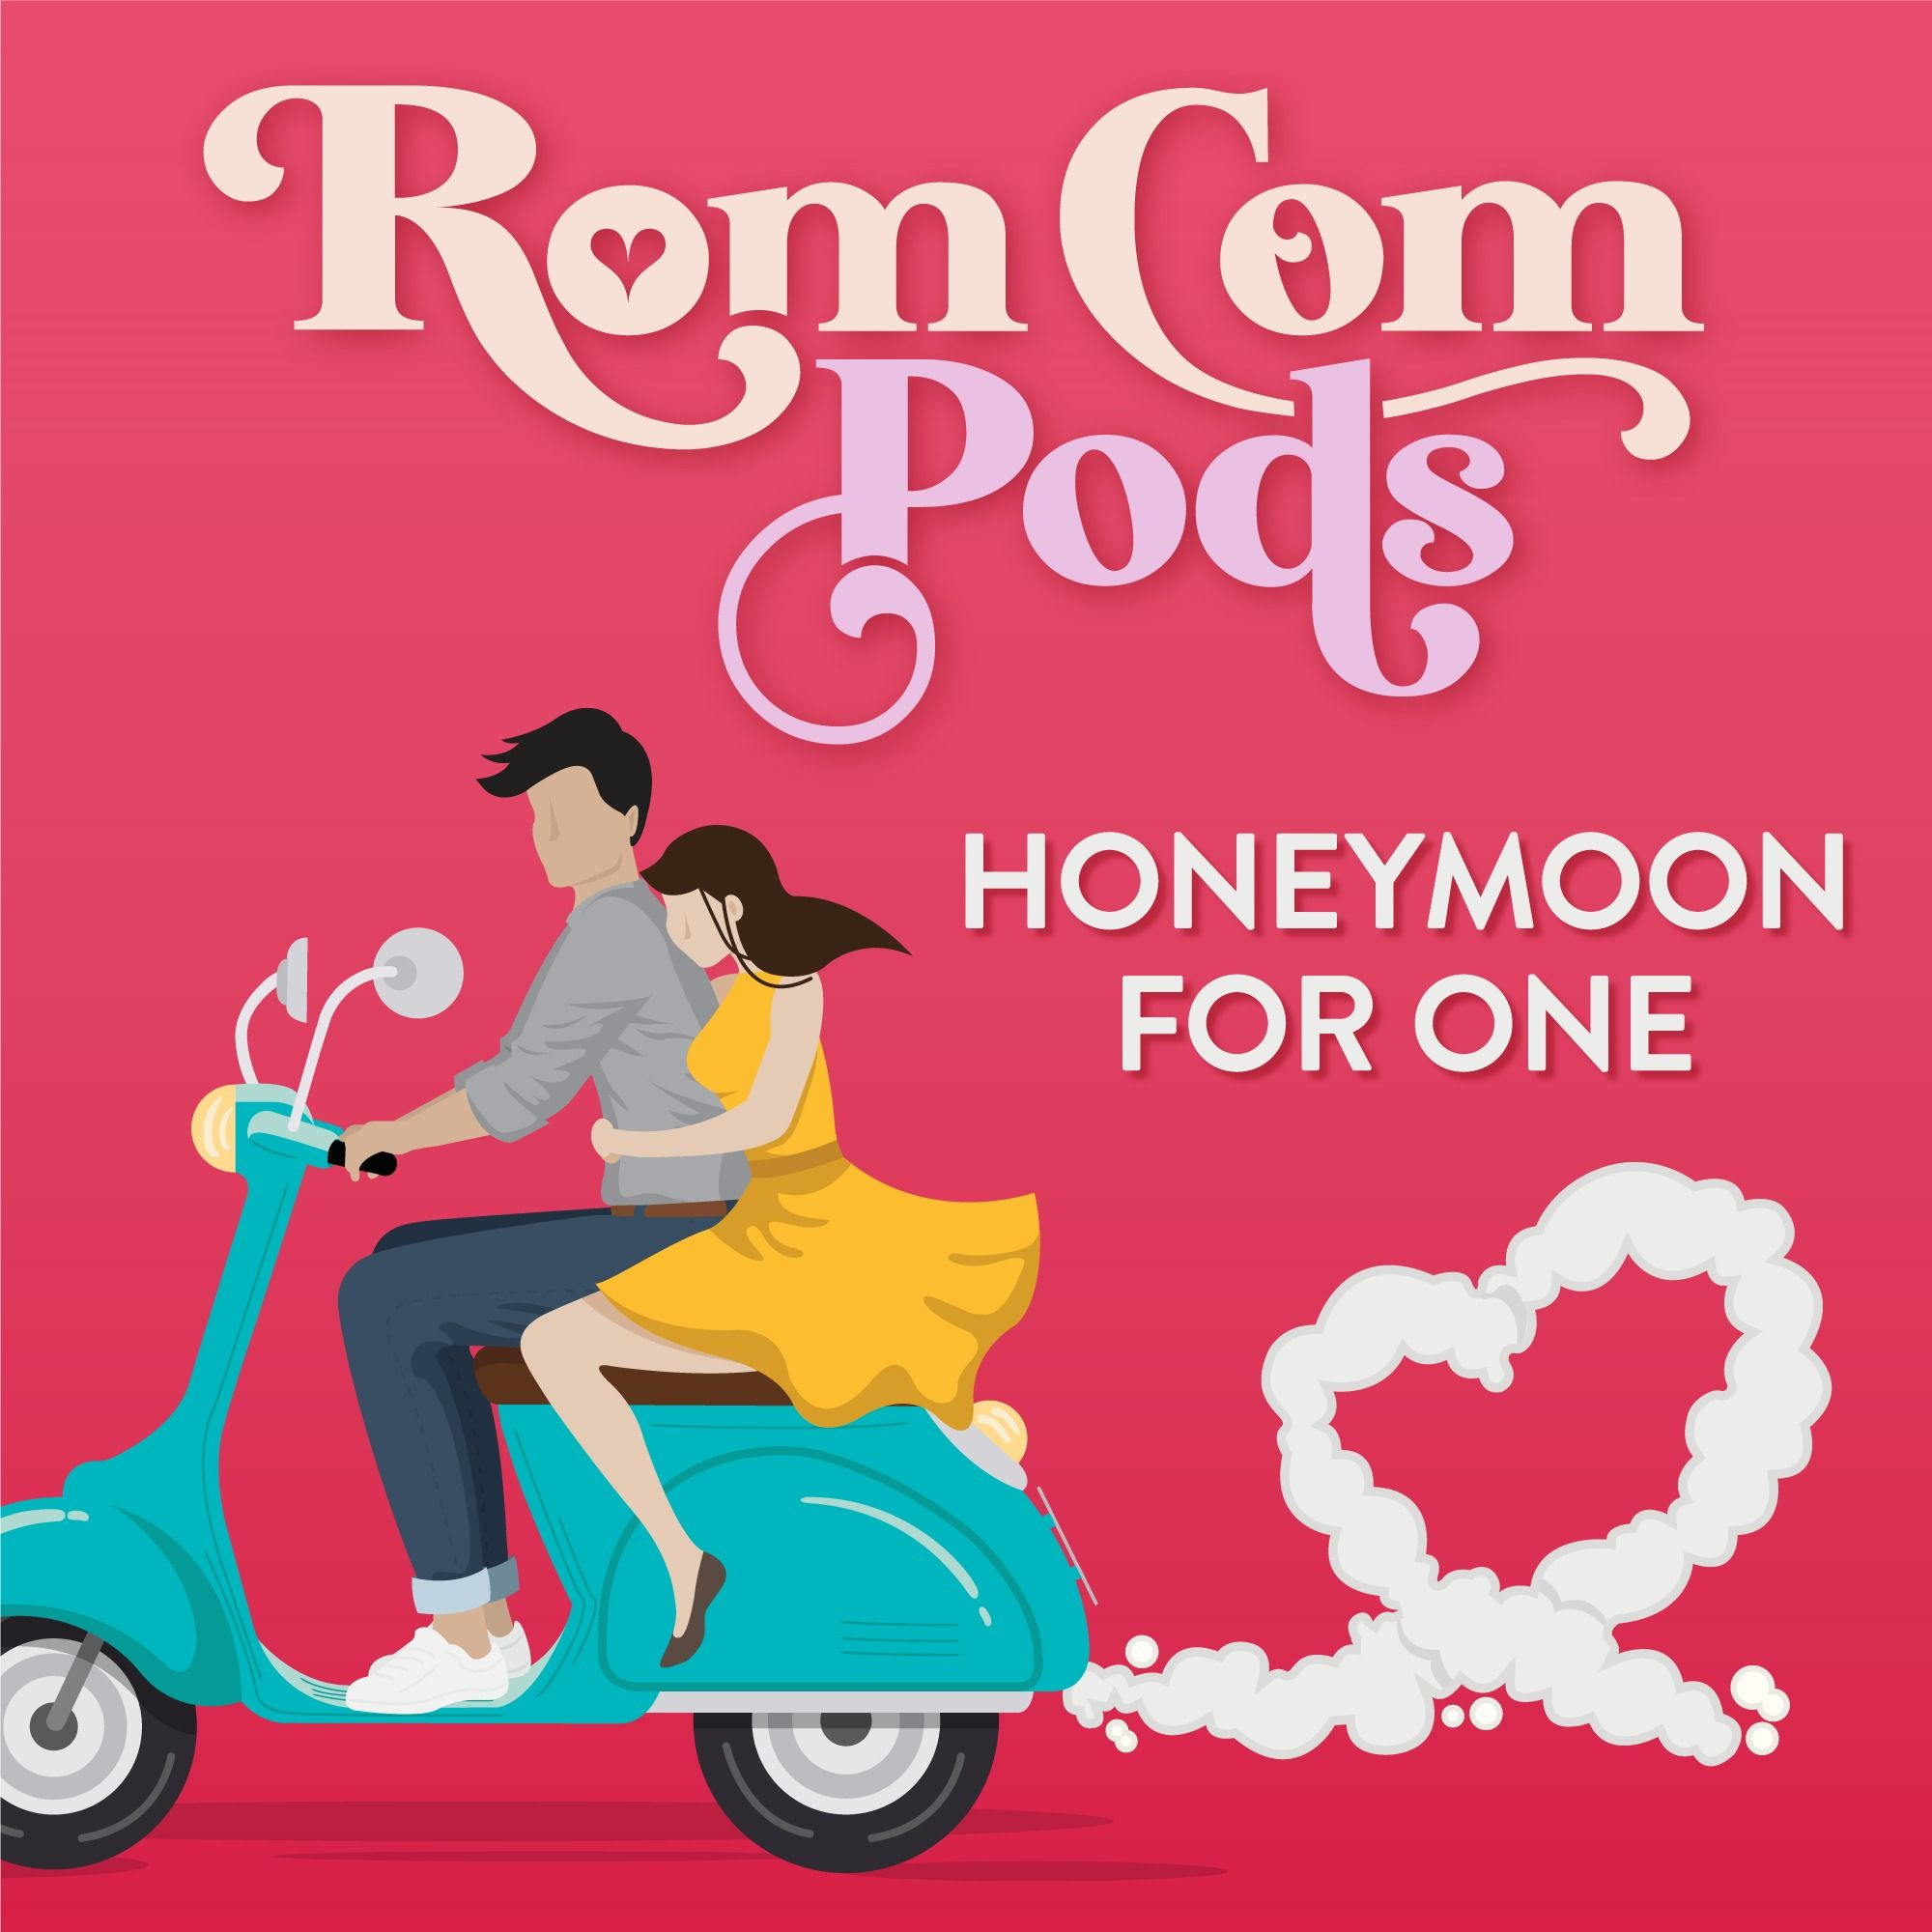 Honeymoon for One: Pasta for Two… for One (Ep 2)